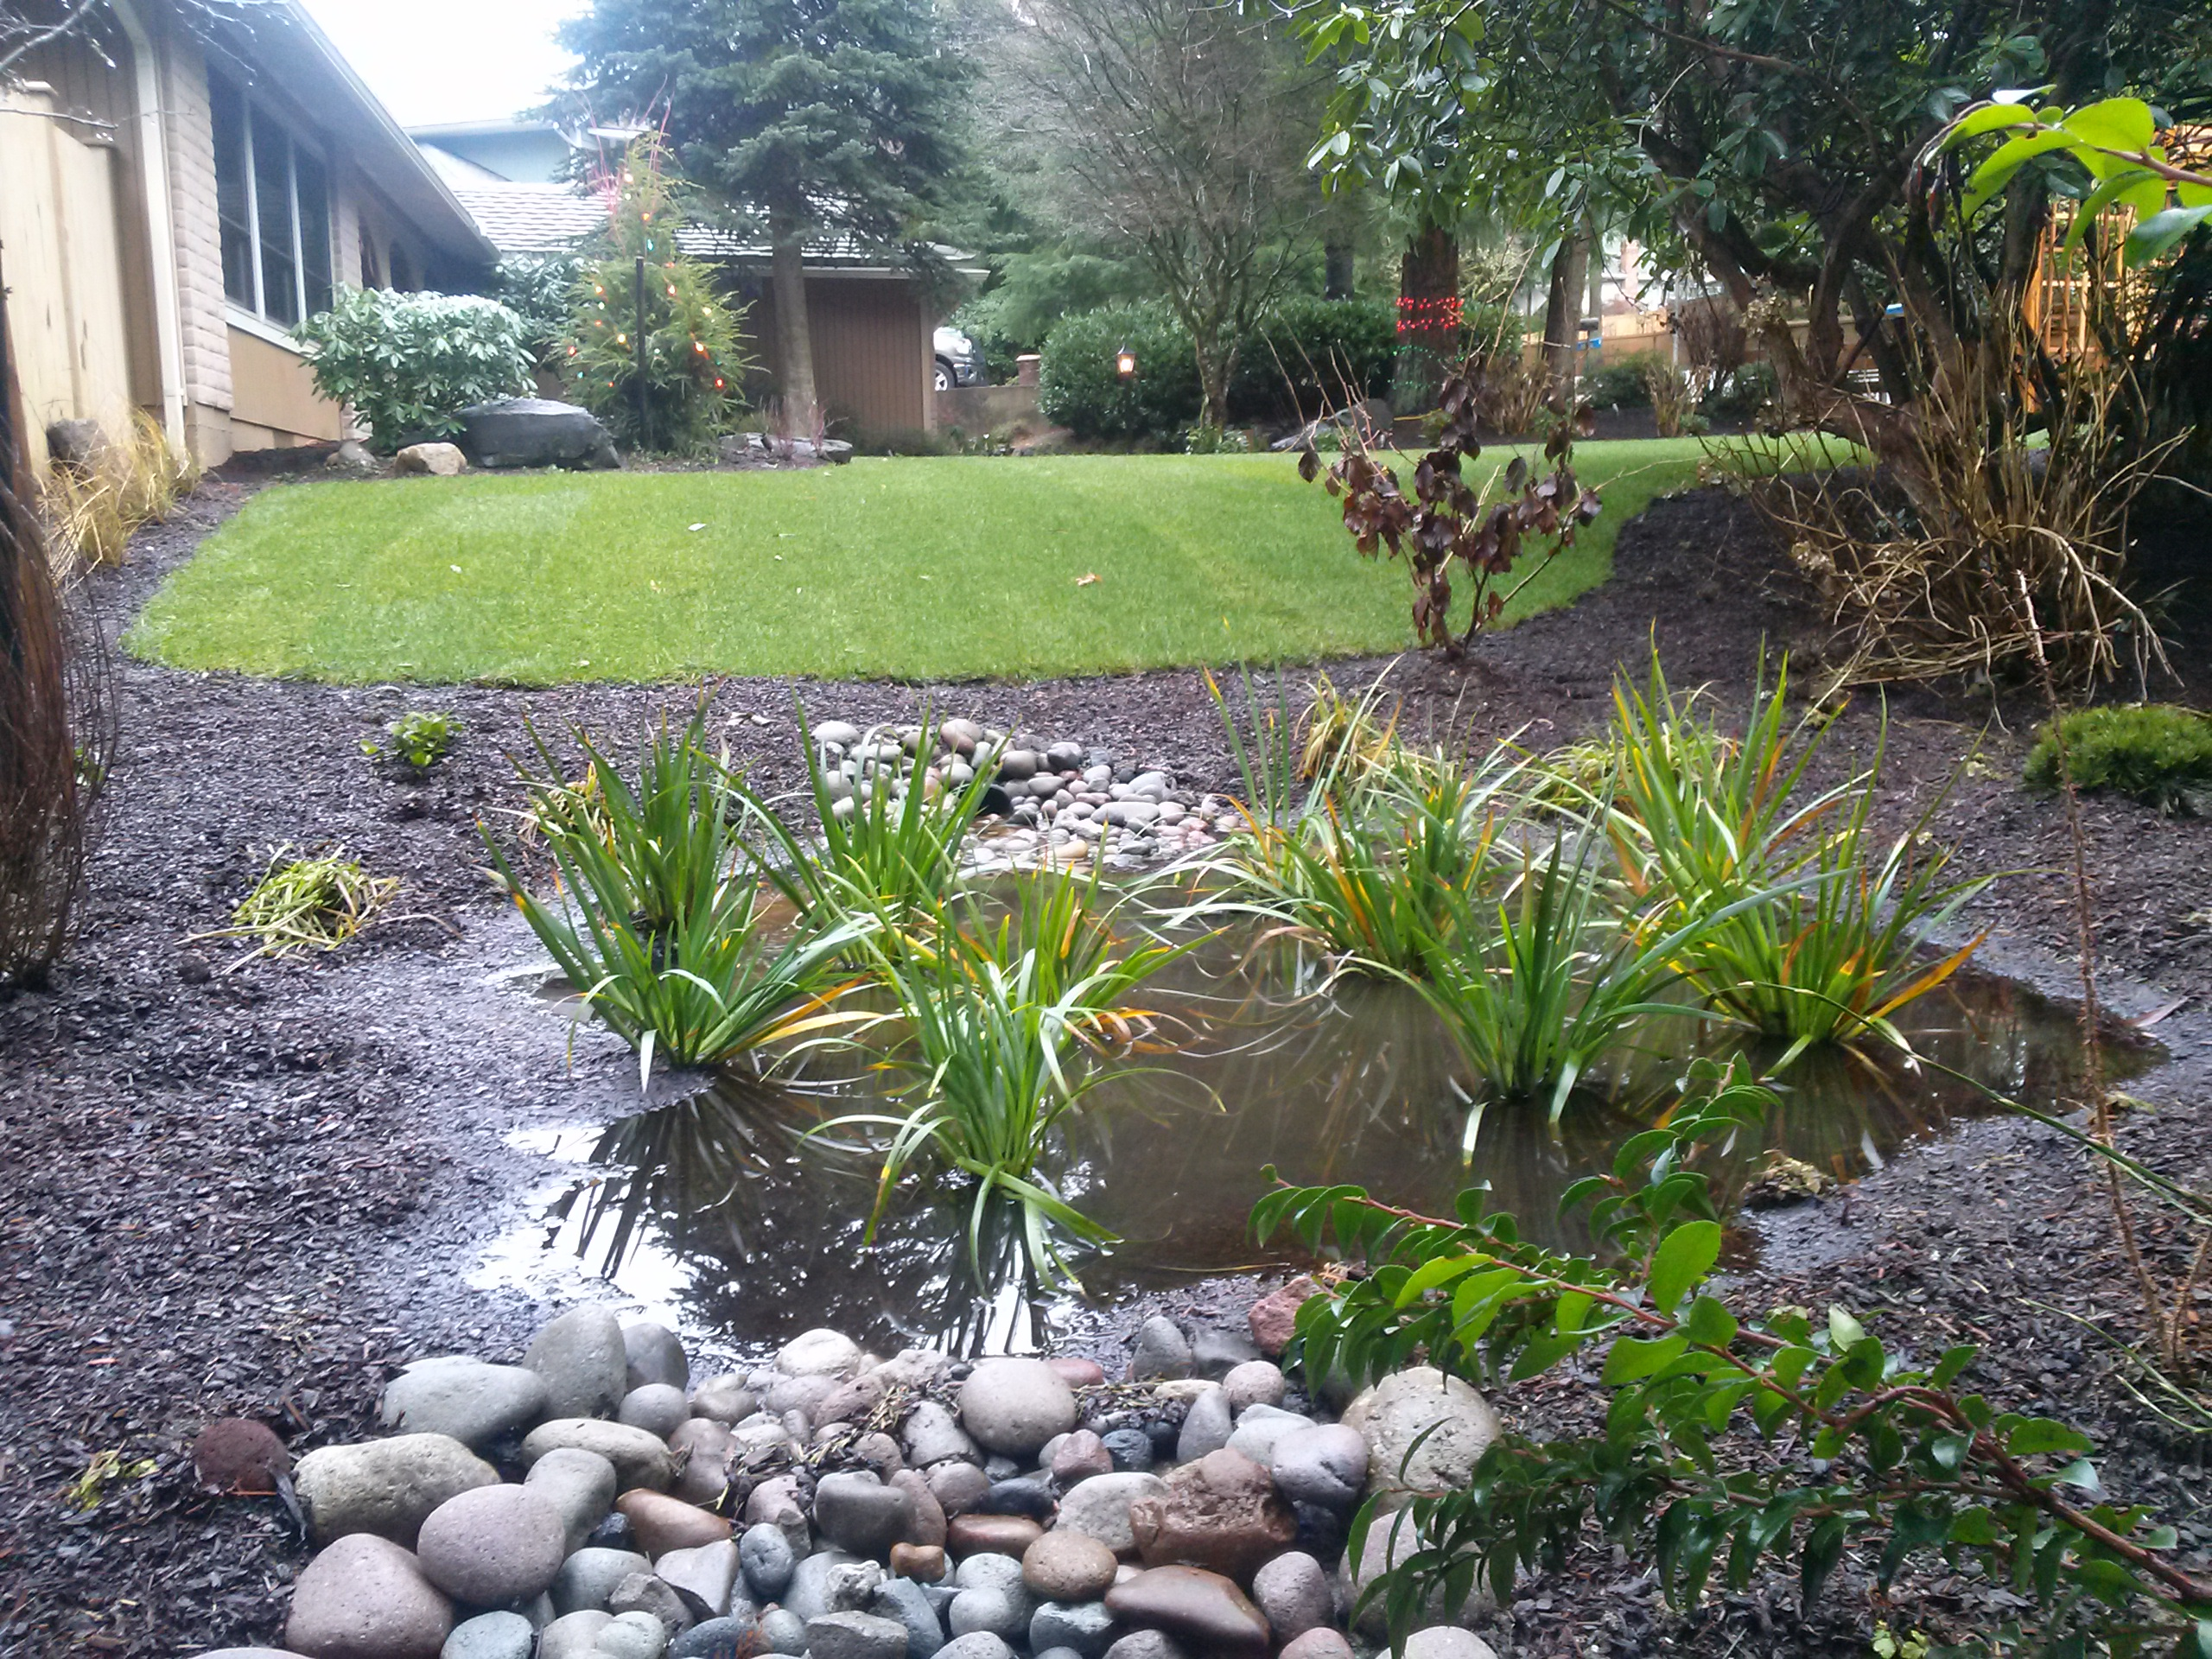 Rain Gardens are Proven to be a Big Boost in Water Quality